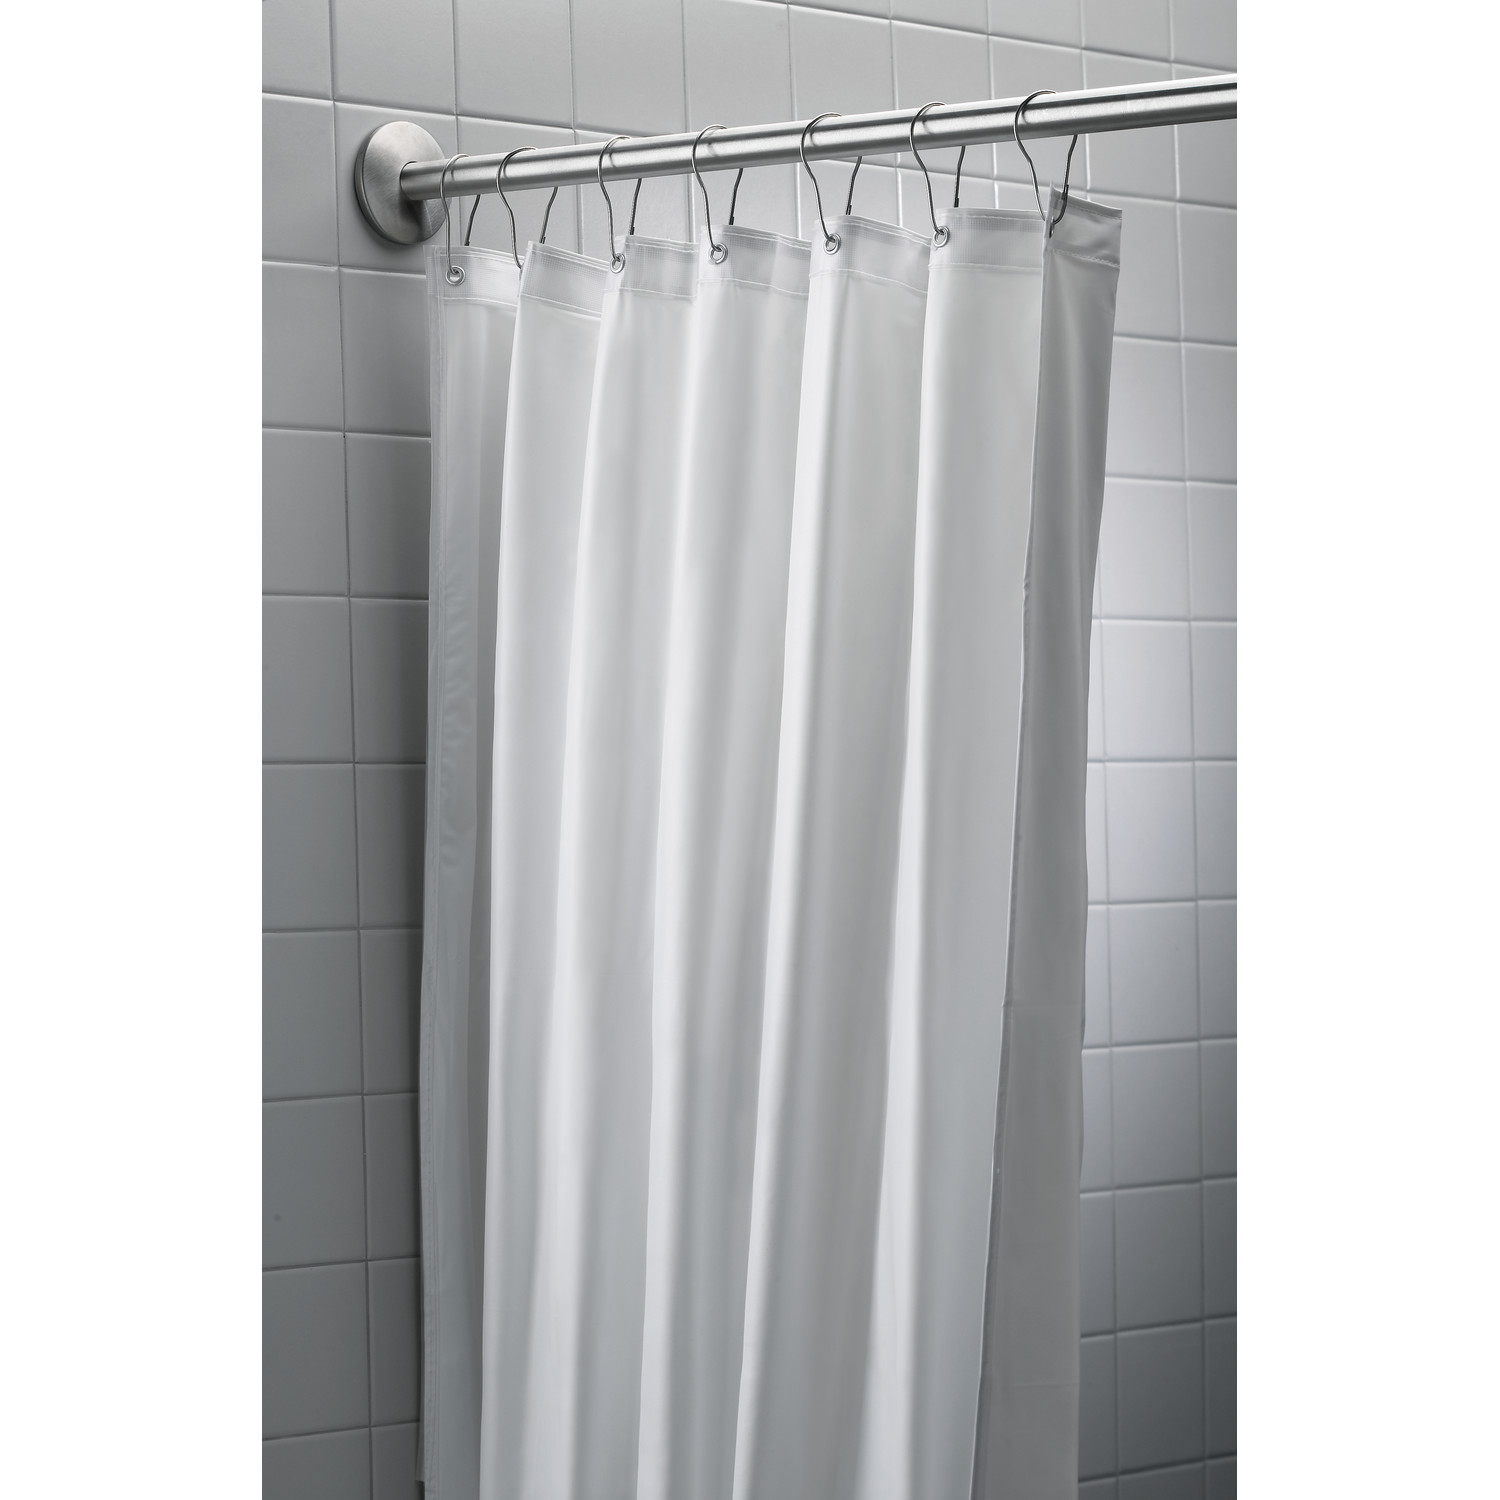 "Bradley 9537-4272 White Antimicrobial Shower Curtain 42"" x 72"""